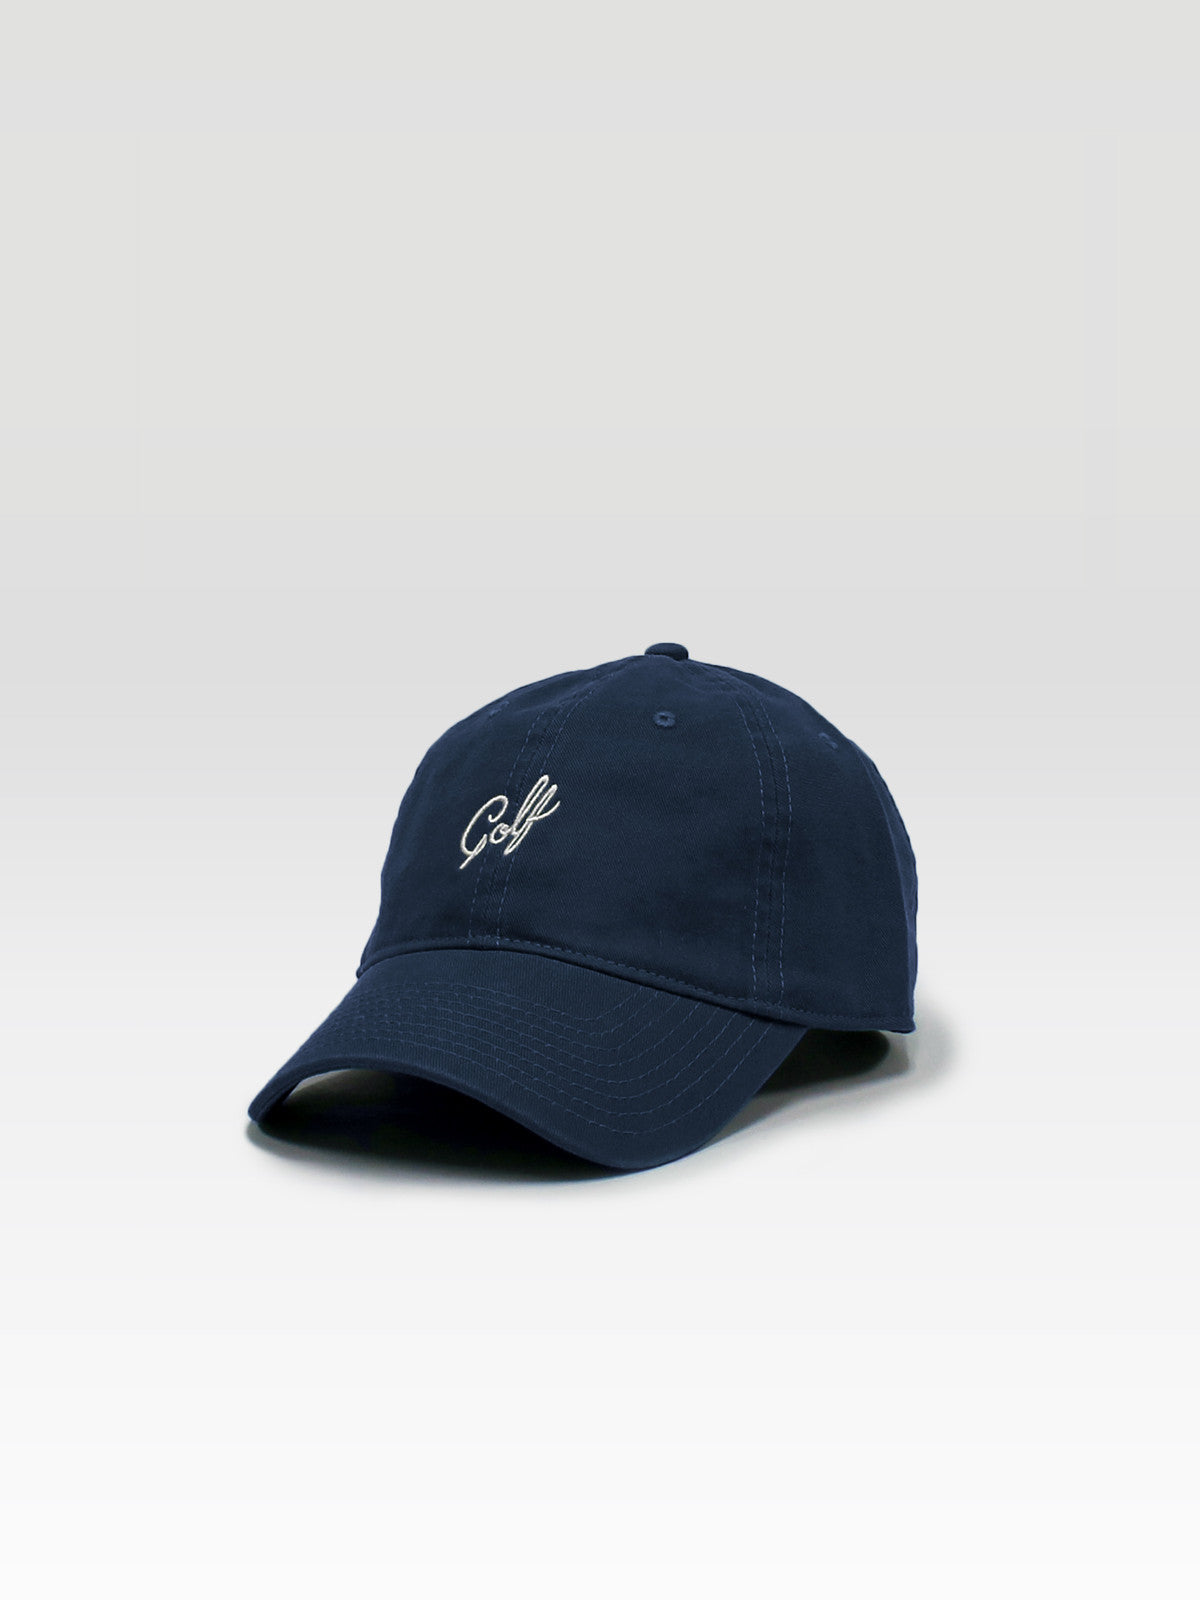 bcc6e7debed Golf Dad Hat - Navy (White) - Haus of Grey